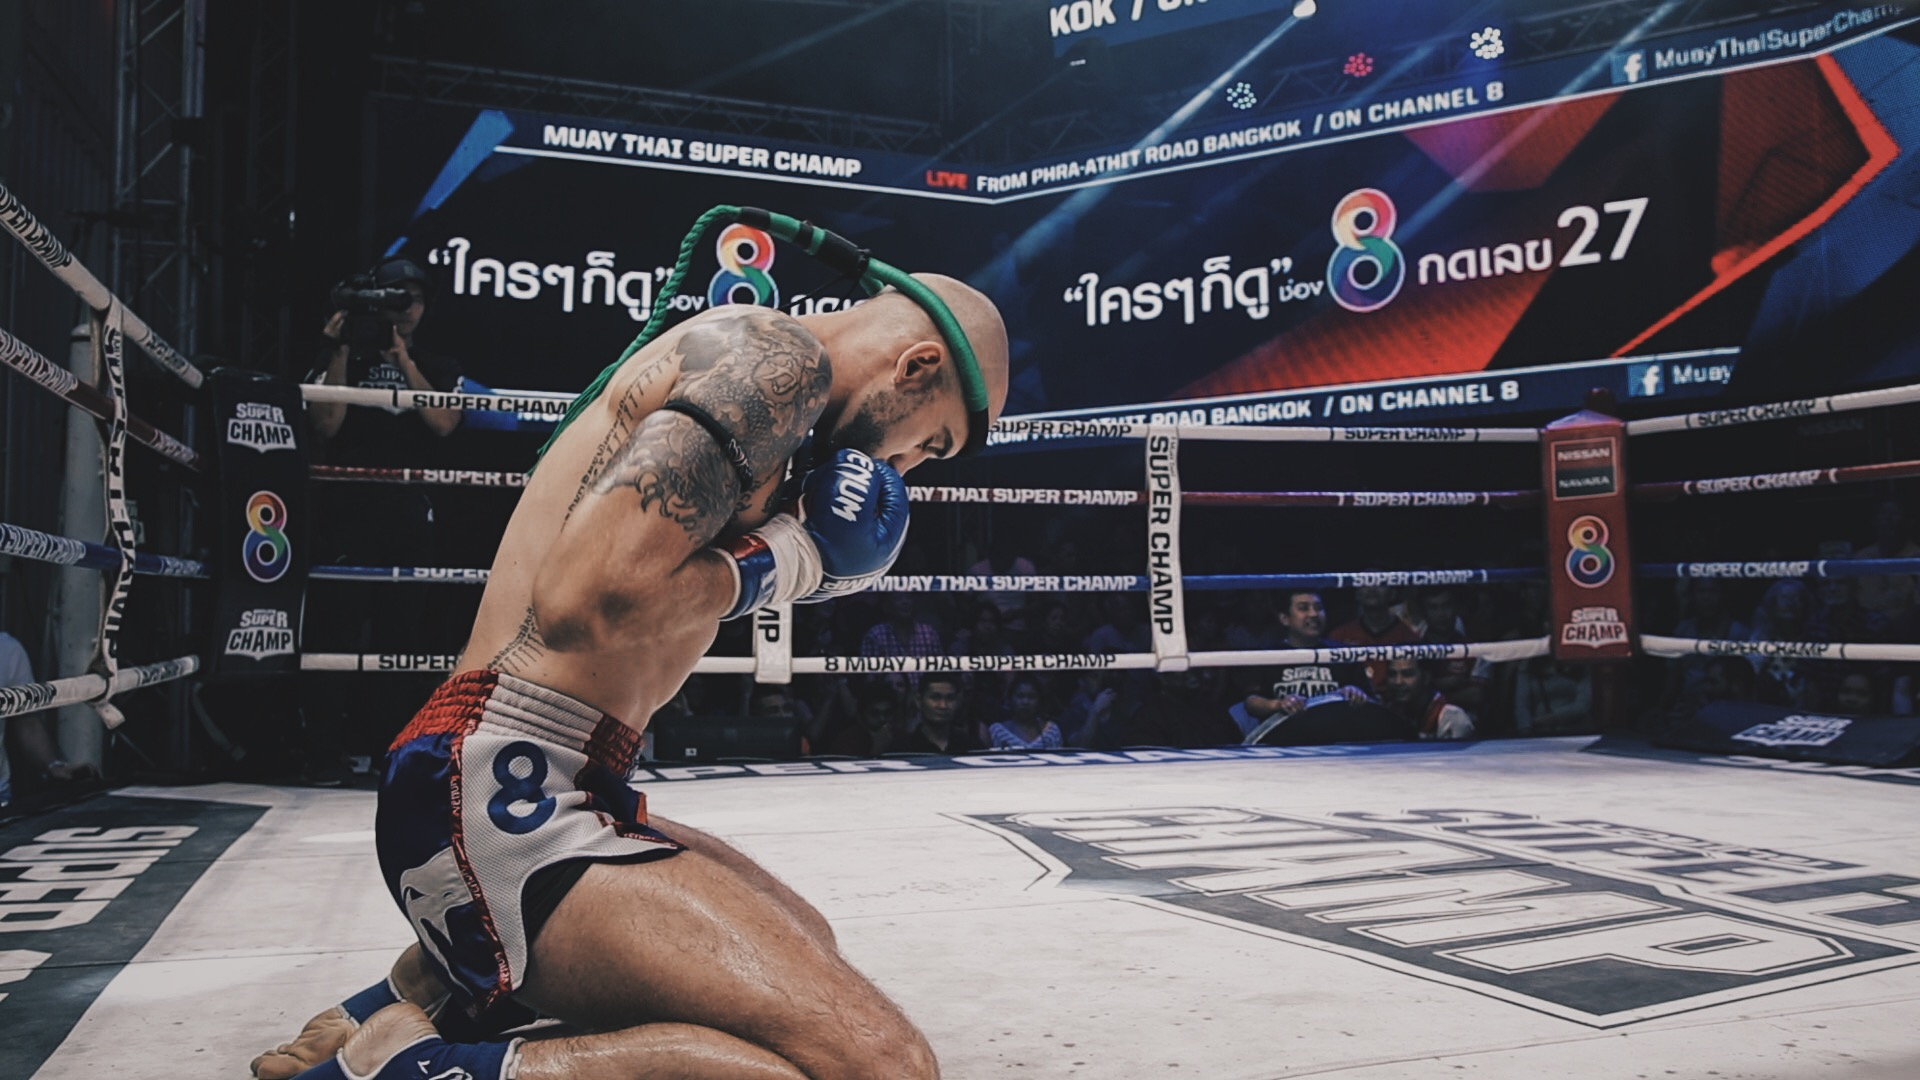 The Realities of a Sponsored Fighter in Thailand